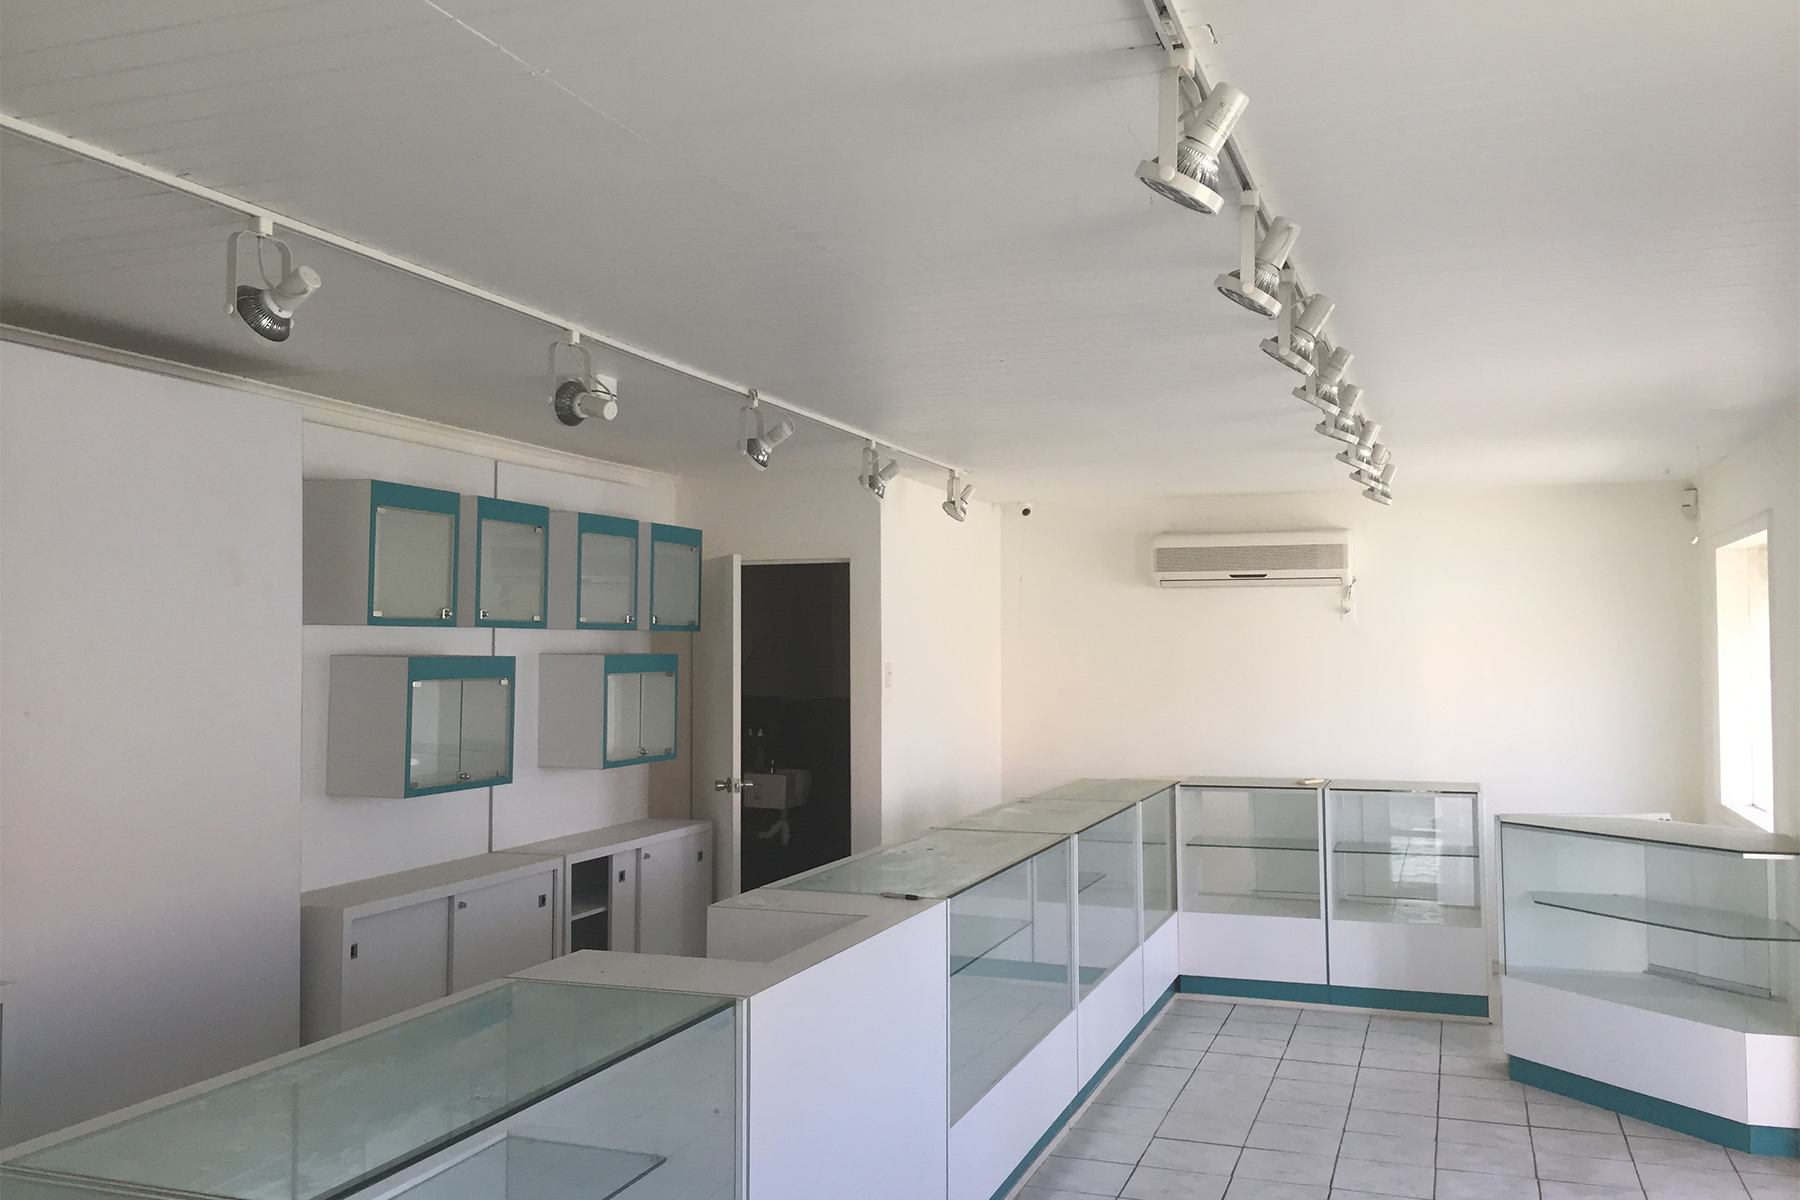 Commercial for Sale at Plasa Reina Wilhelmina Retail Spaces Kralendijk, Bonaire